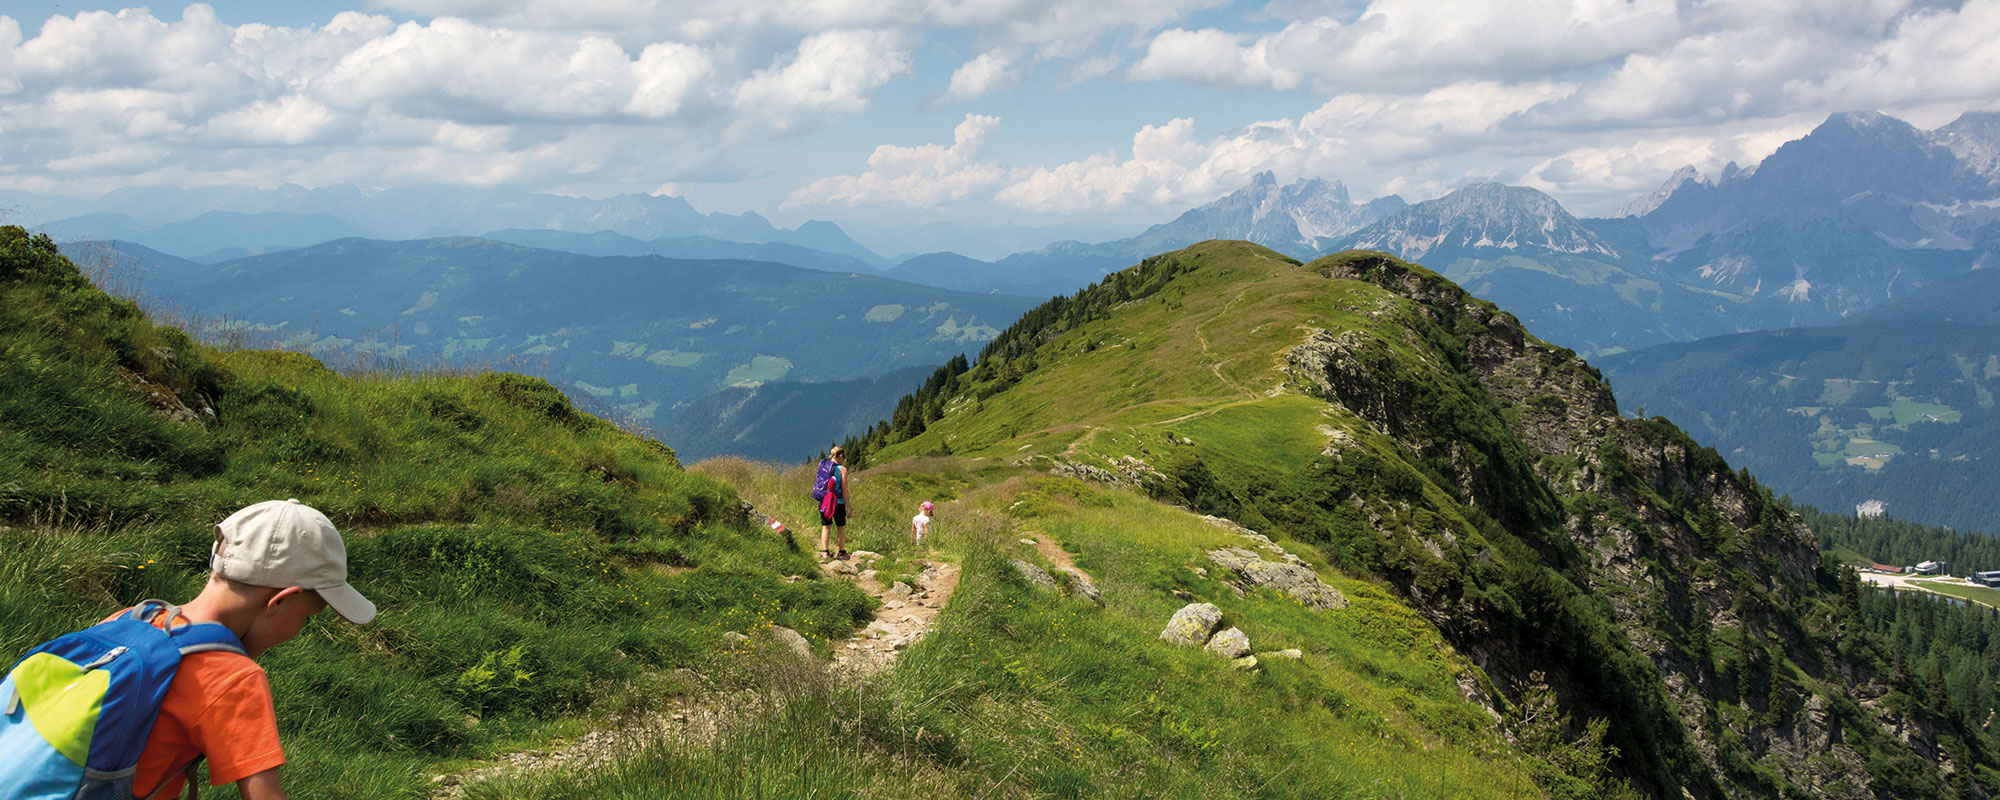 Hiking on the mountain trail of the Hochwurzen